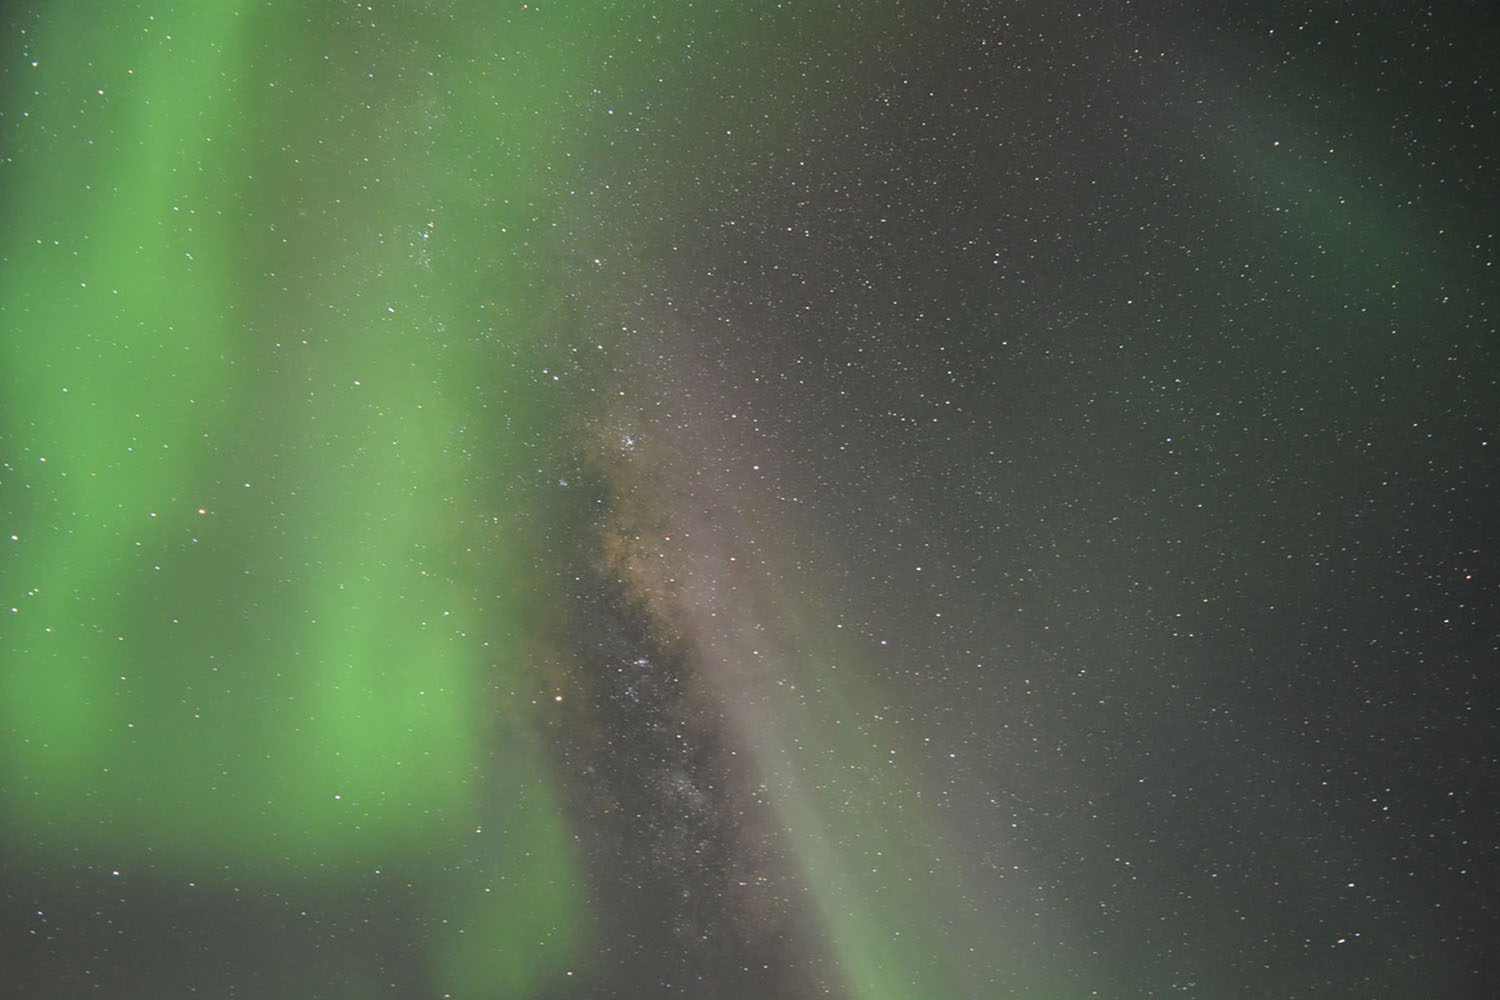 The Southern Lights, or Aurora Australis, in Antarctica. Seen with the Milky Way.